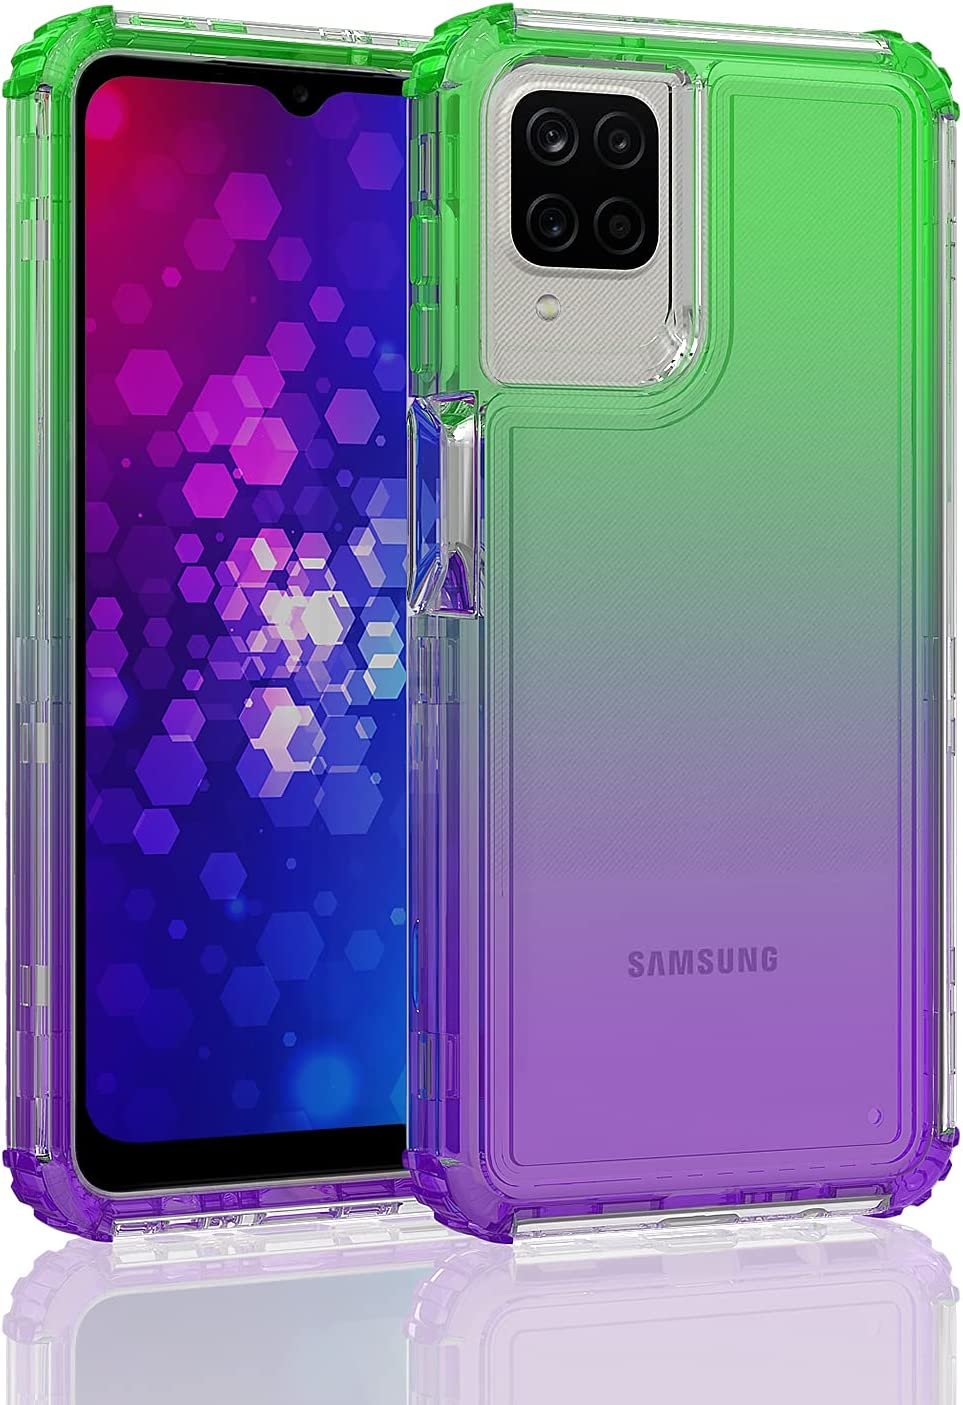 Shinewish Cell Phone Case for Samsung Galaxy A12 5G, 3 in 1 Heavy Duty Shockproof Bumper Full Edge Hybrid Cover for Women Girls Men, Green/Purple Gradient